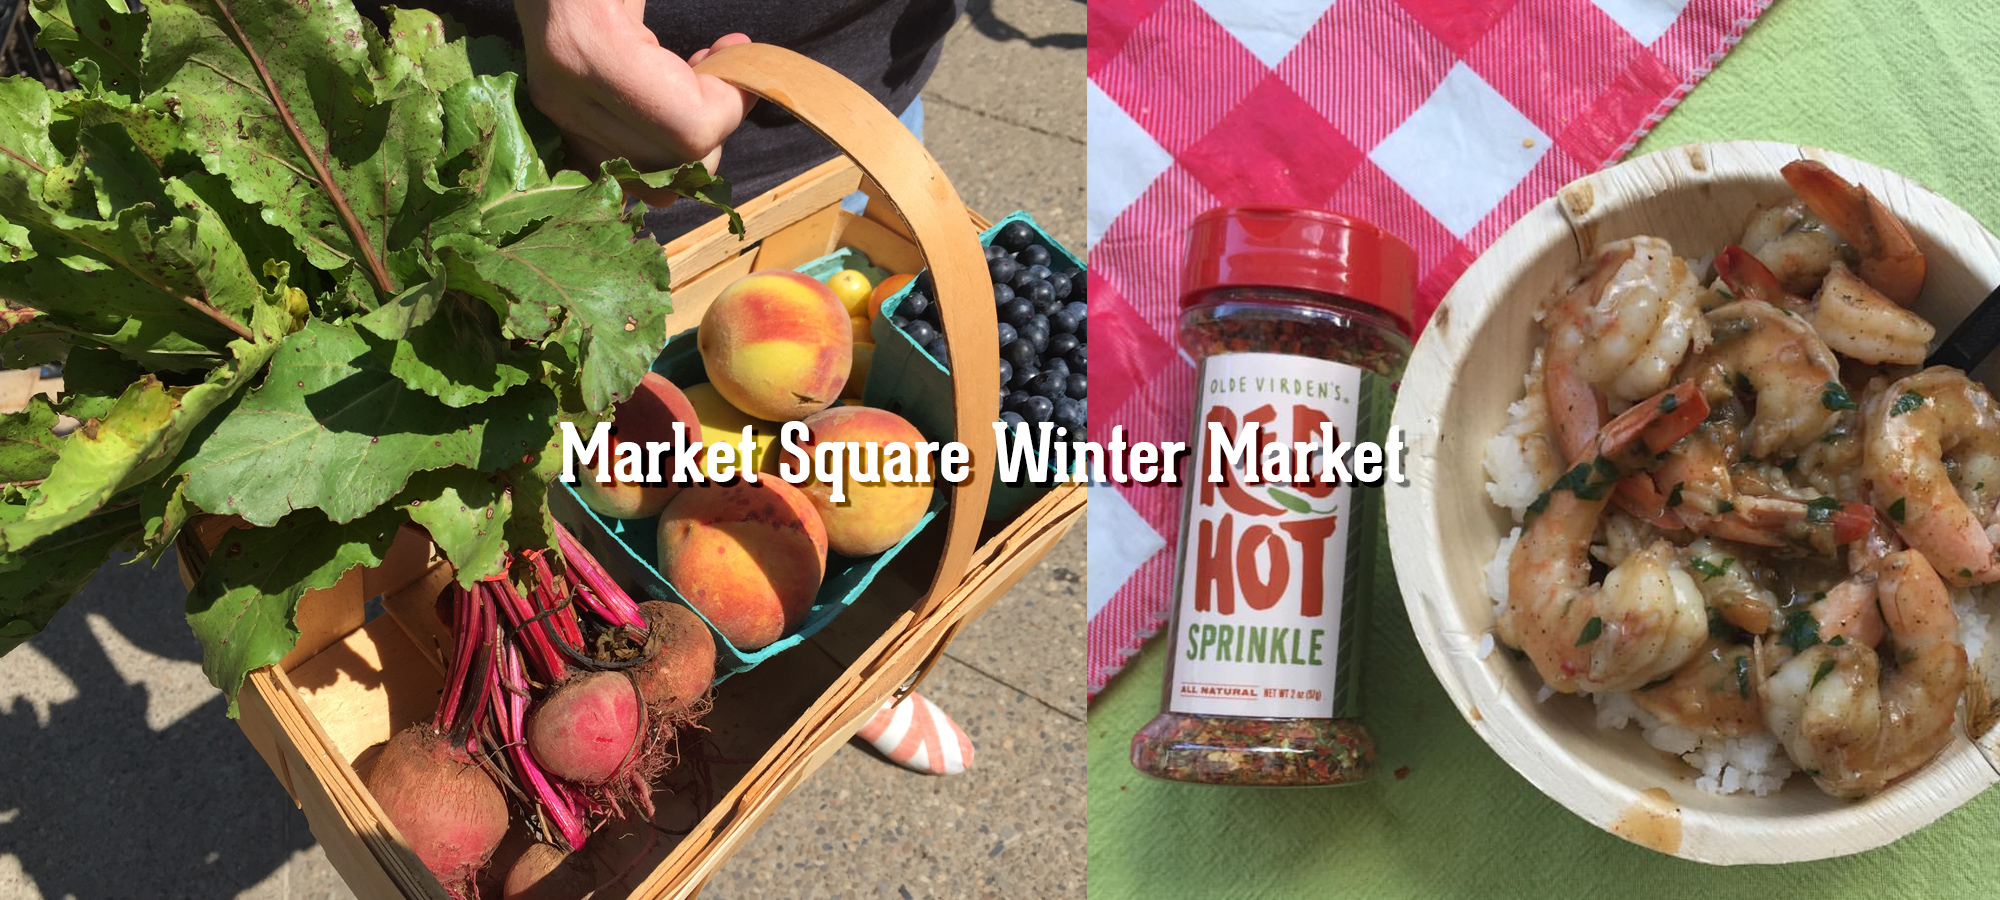 Knoxfoodie Knoxville Holiday Guide Market Square Farmers Market